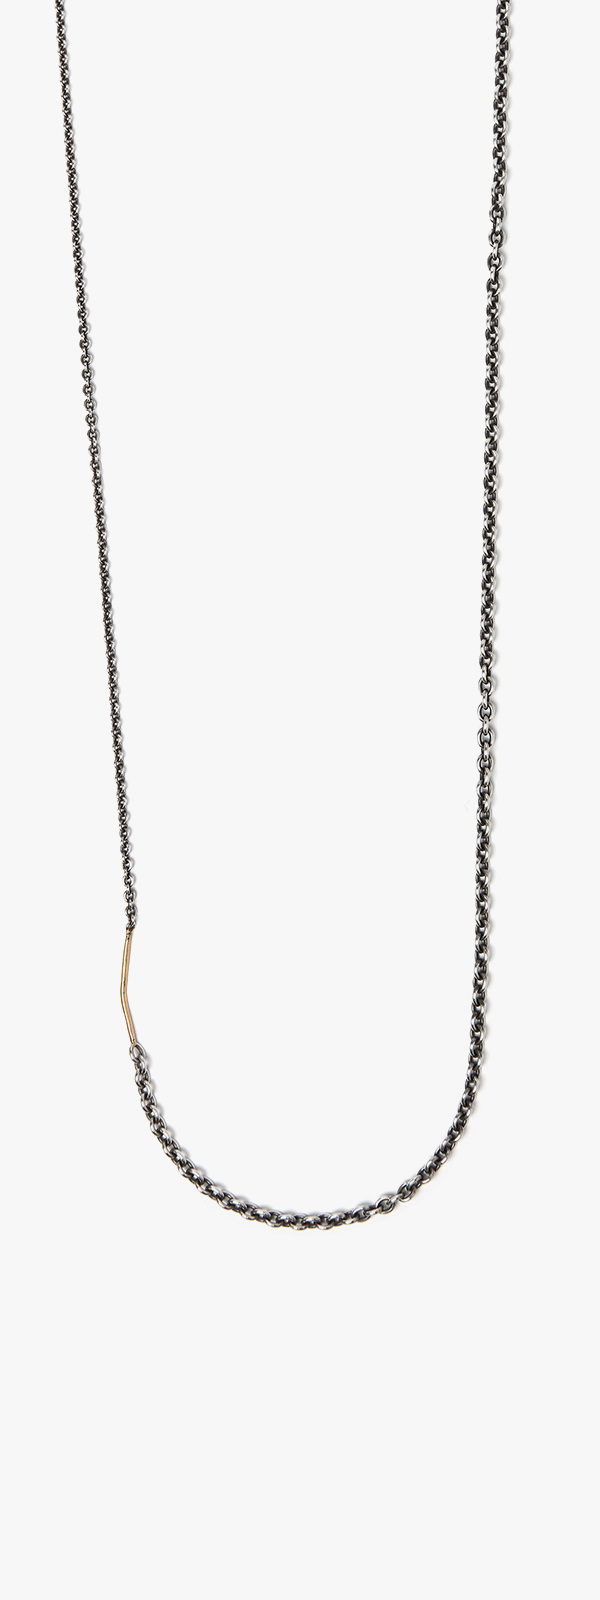 Image of 18k Gold Wire to Cable Necklace 092